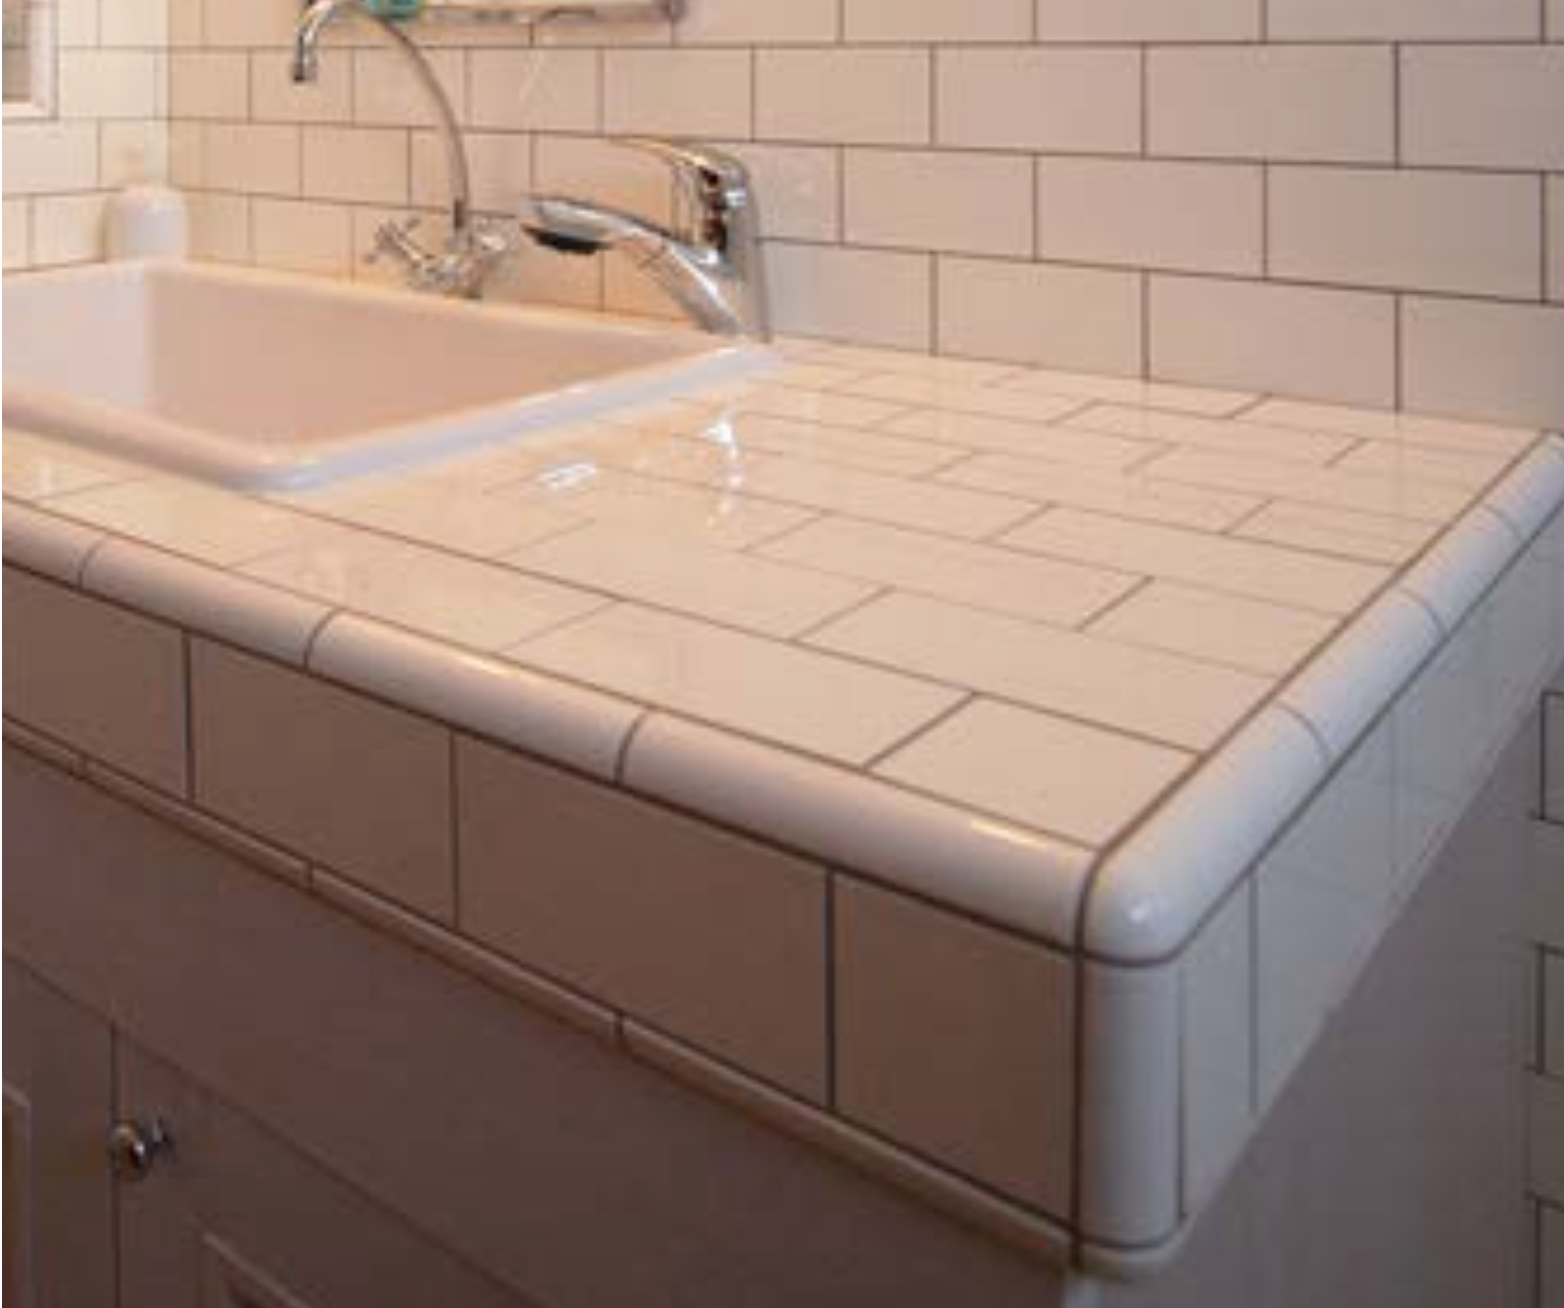 subway tile counter trimmed with